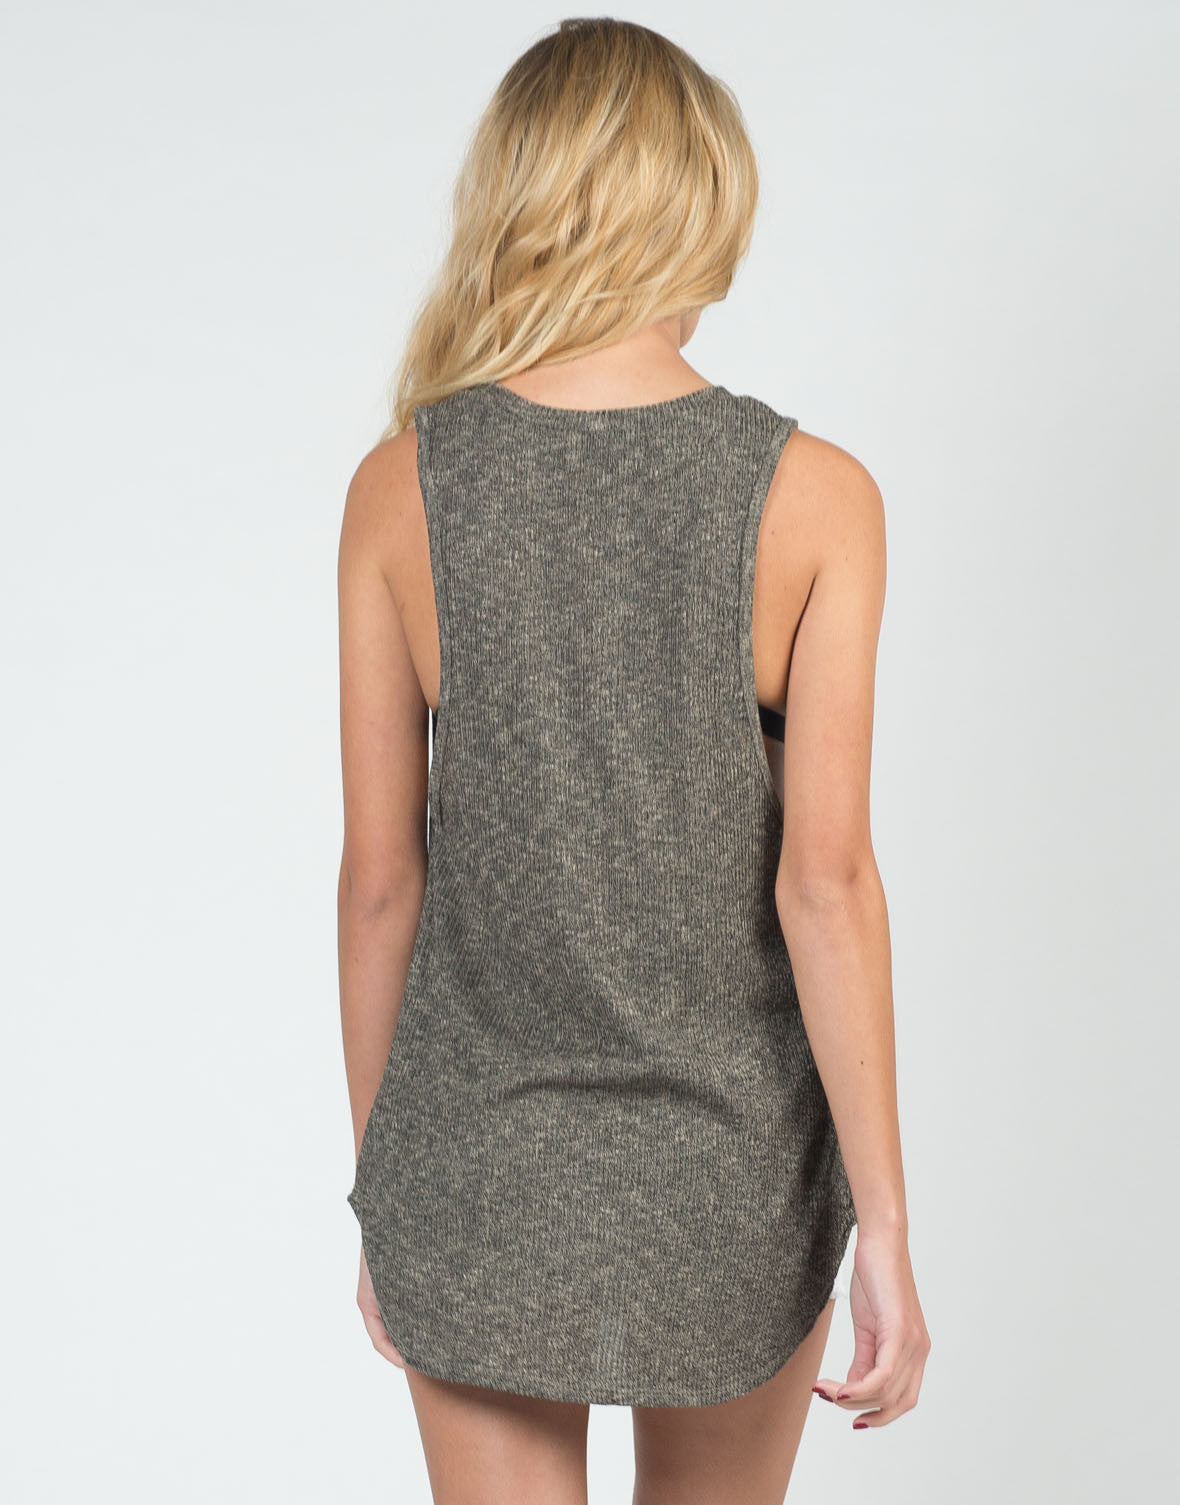 Back View of Two Tone Knitted Tank